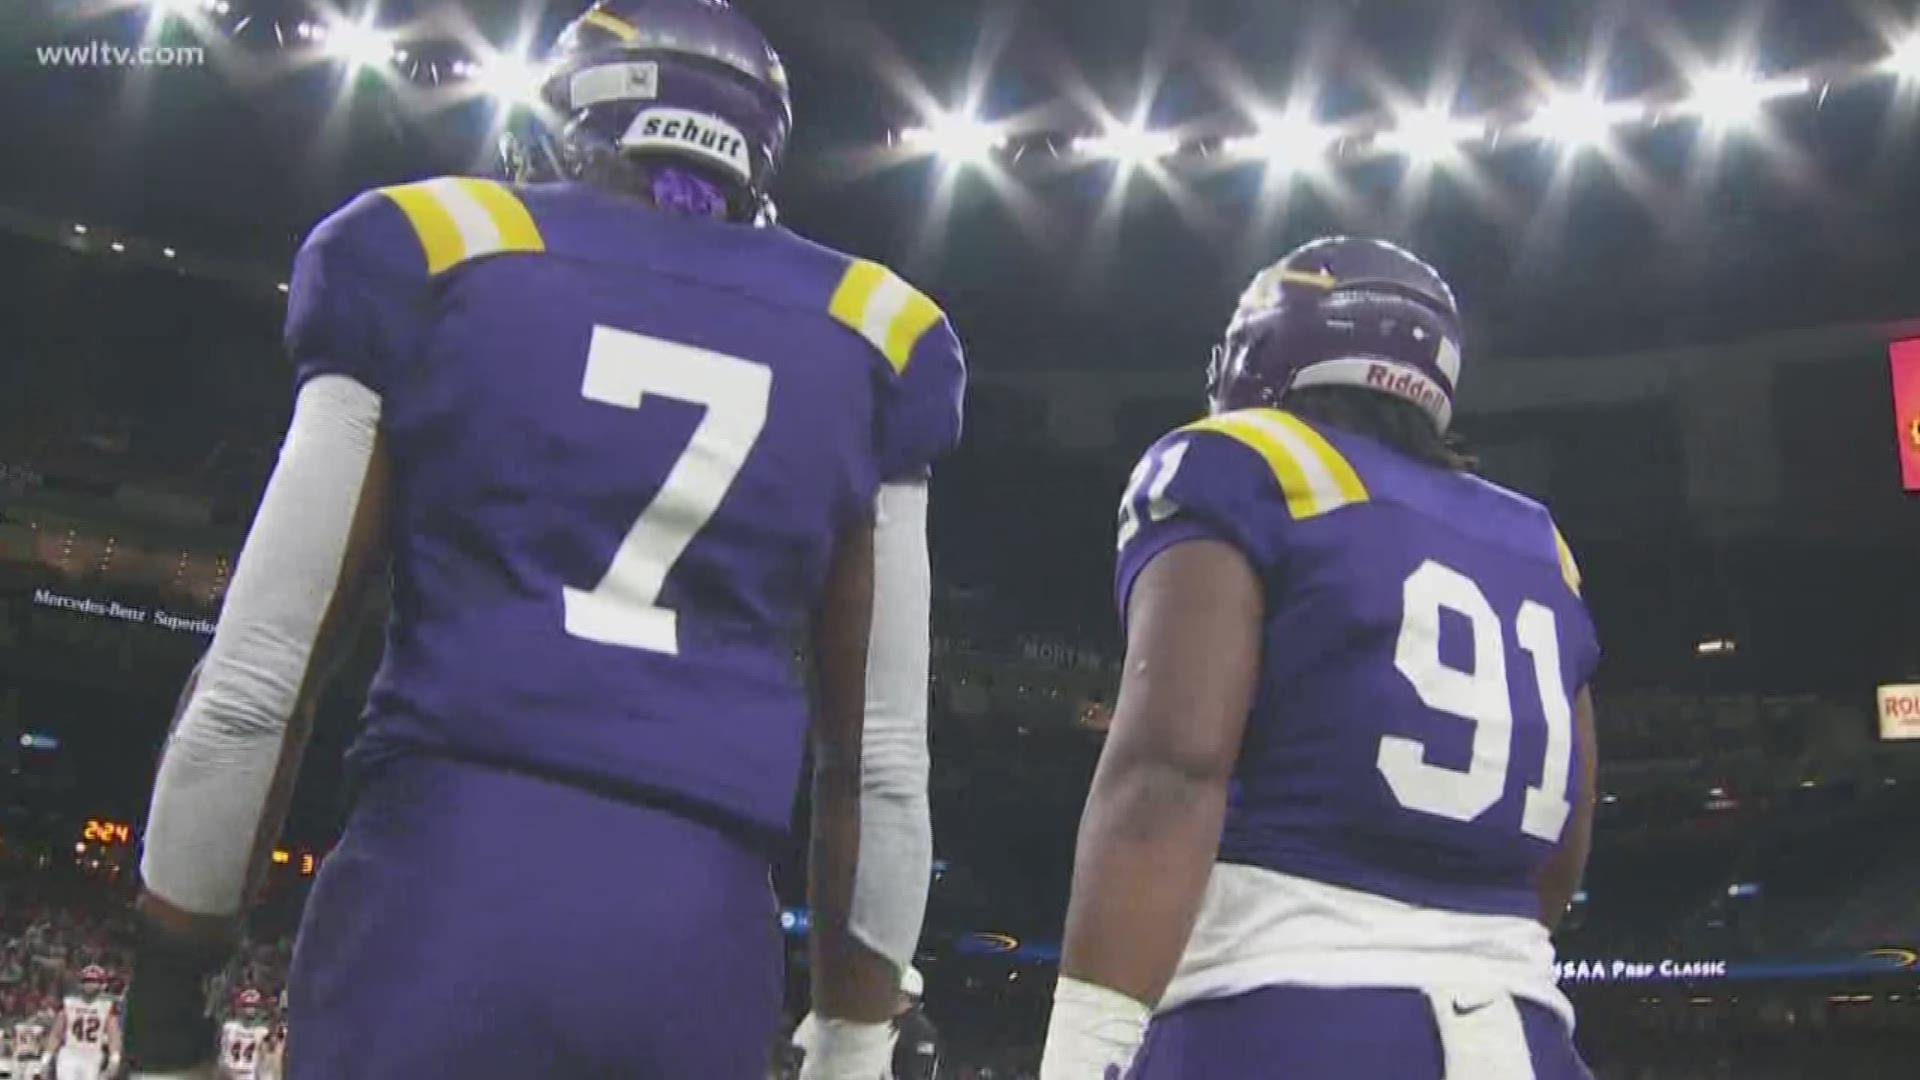 Lsu Football Aims To Complete The Amite Sweep Wwltv Com